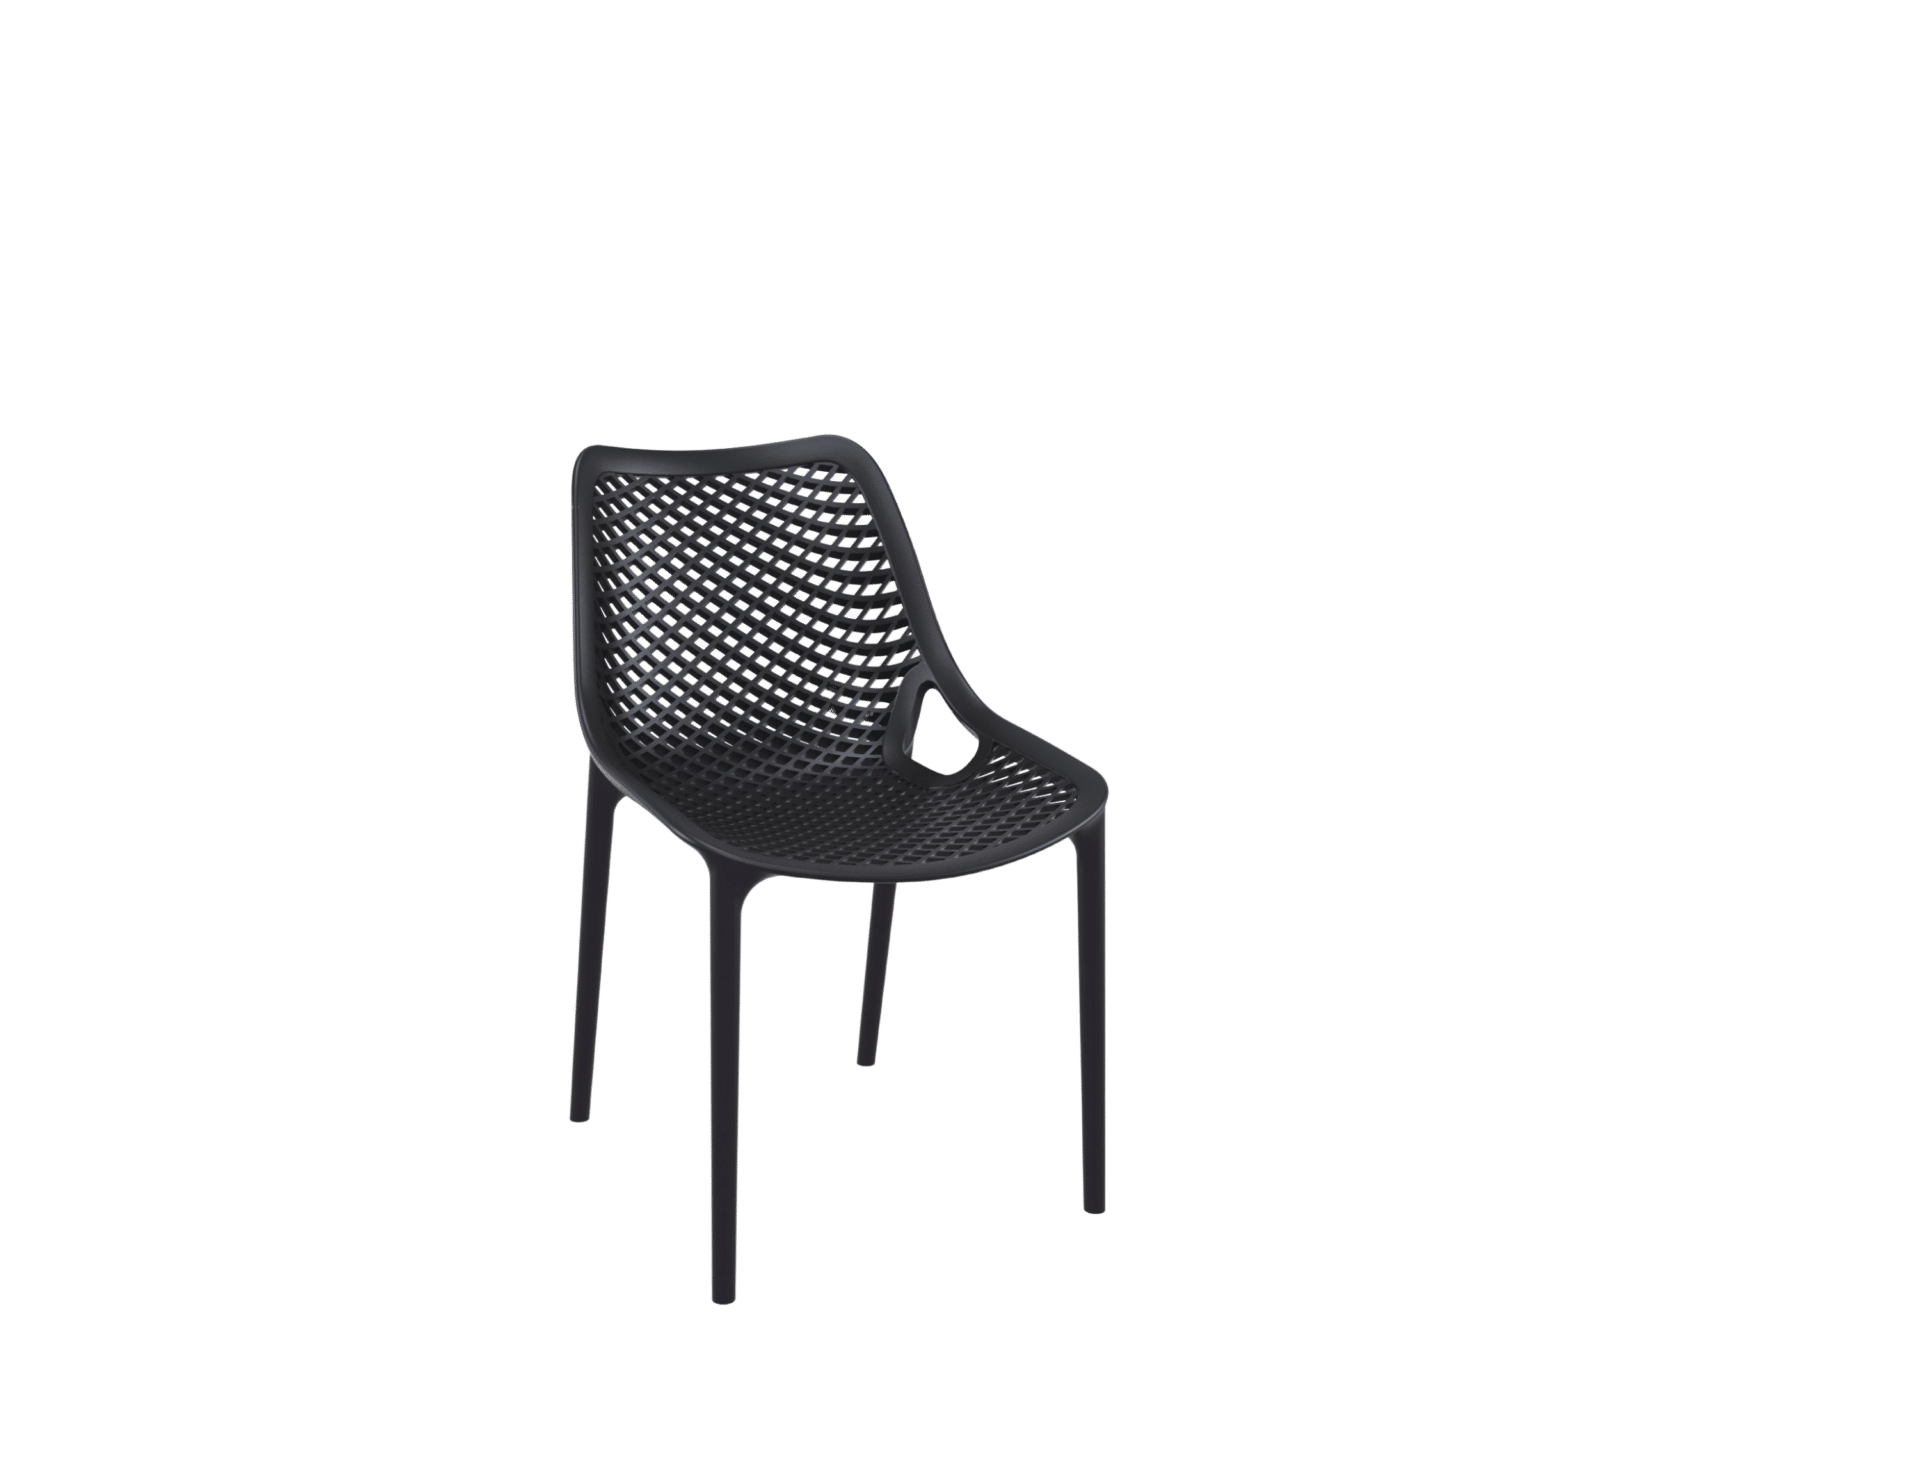 products_oxygen_chair_black